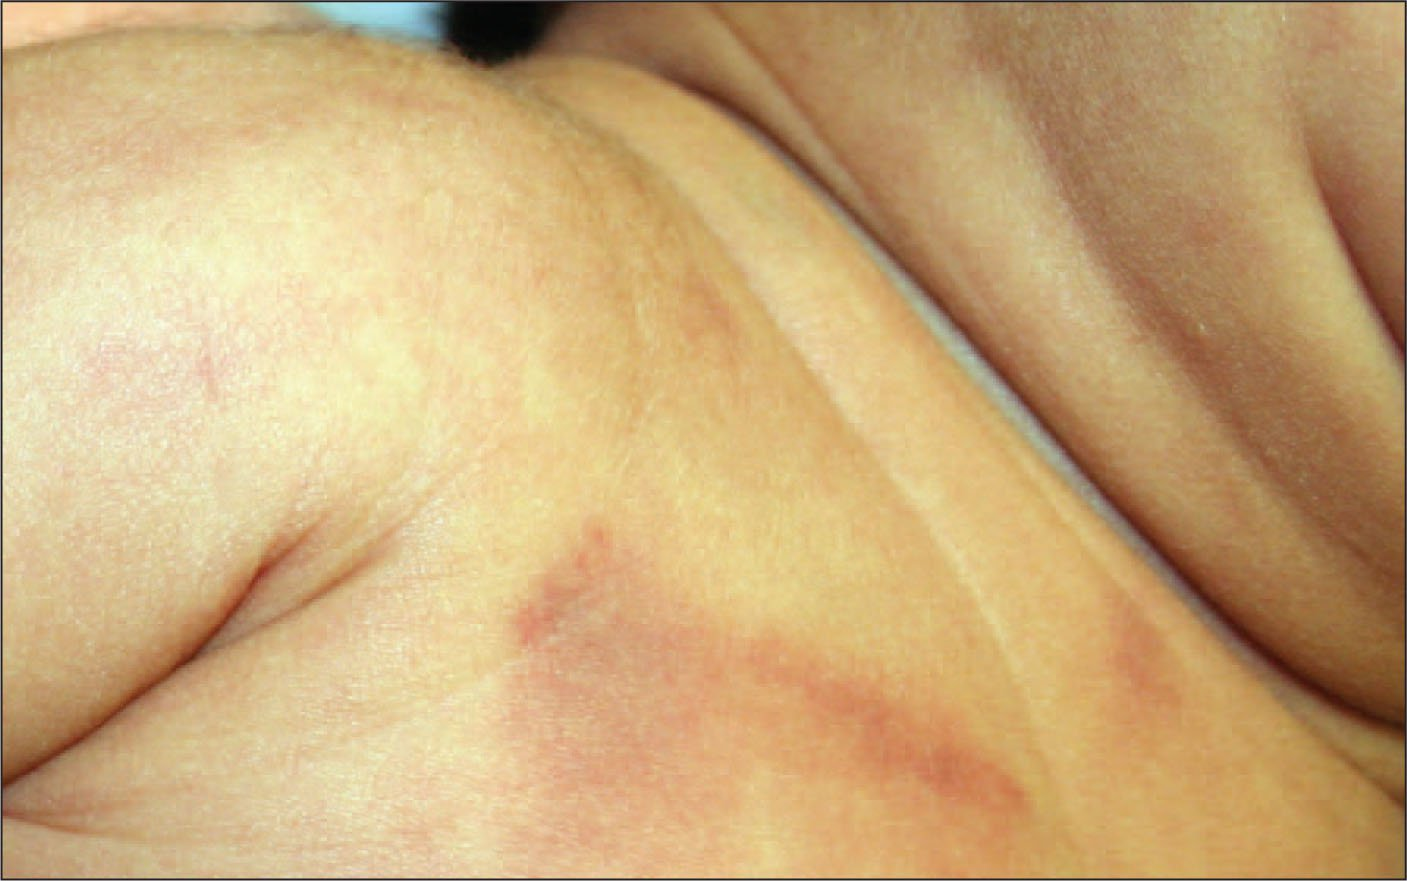 This 1-Month-Old Presented with a Limp Arm and This Chest Bruise. Skeletal Survey Revealed a Humeral Fracture.